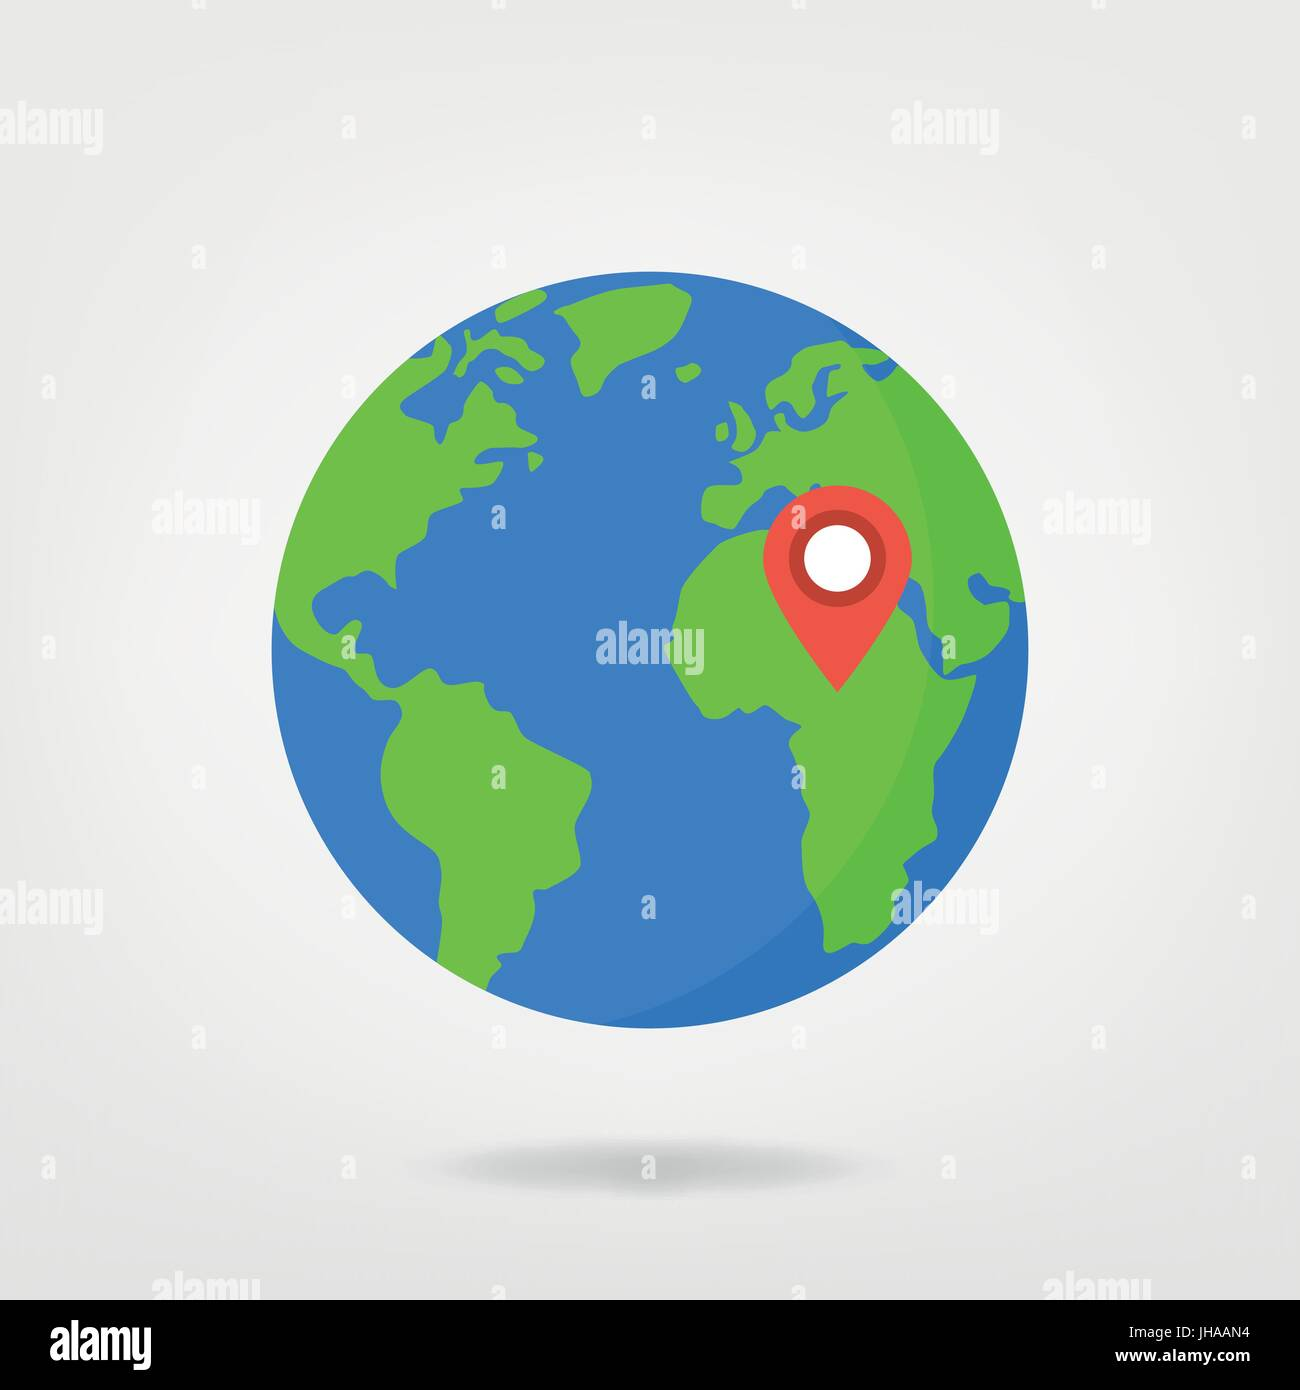 Africa location pin on world illustration world map globe africa location pin on world illustration world map globe with red location marker gumiabroncs Image collections